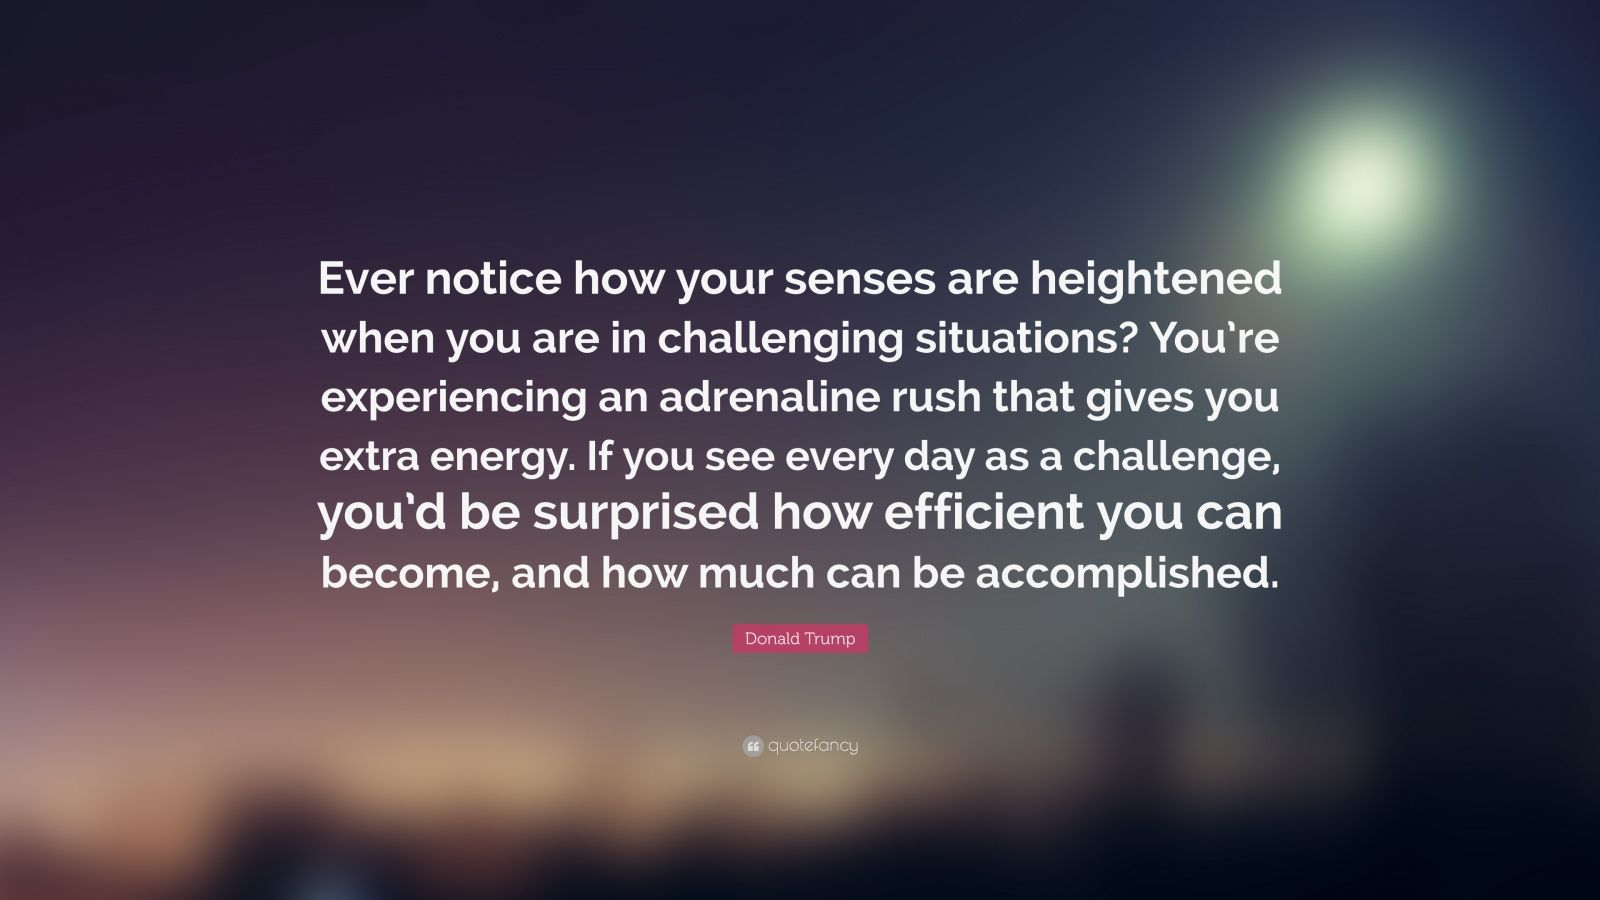 "Donald Trump Quote: ""Ever notice how your senses are heightened when you are in challenging situations? You're experiencing an adrenaline rush that gives you extra energy. If you see every day as a challenge, you'd be surprised how efficient you can become, and how much can be accomplished."""